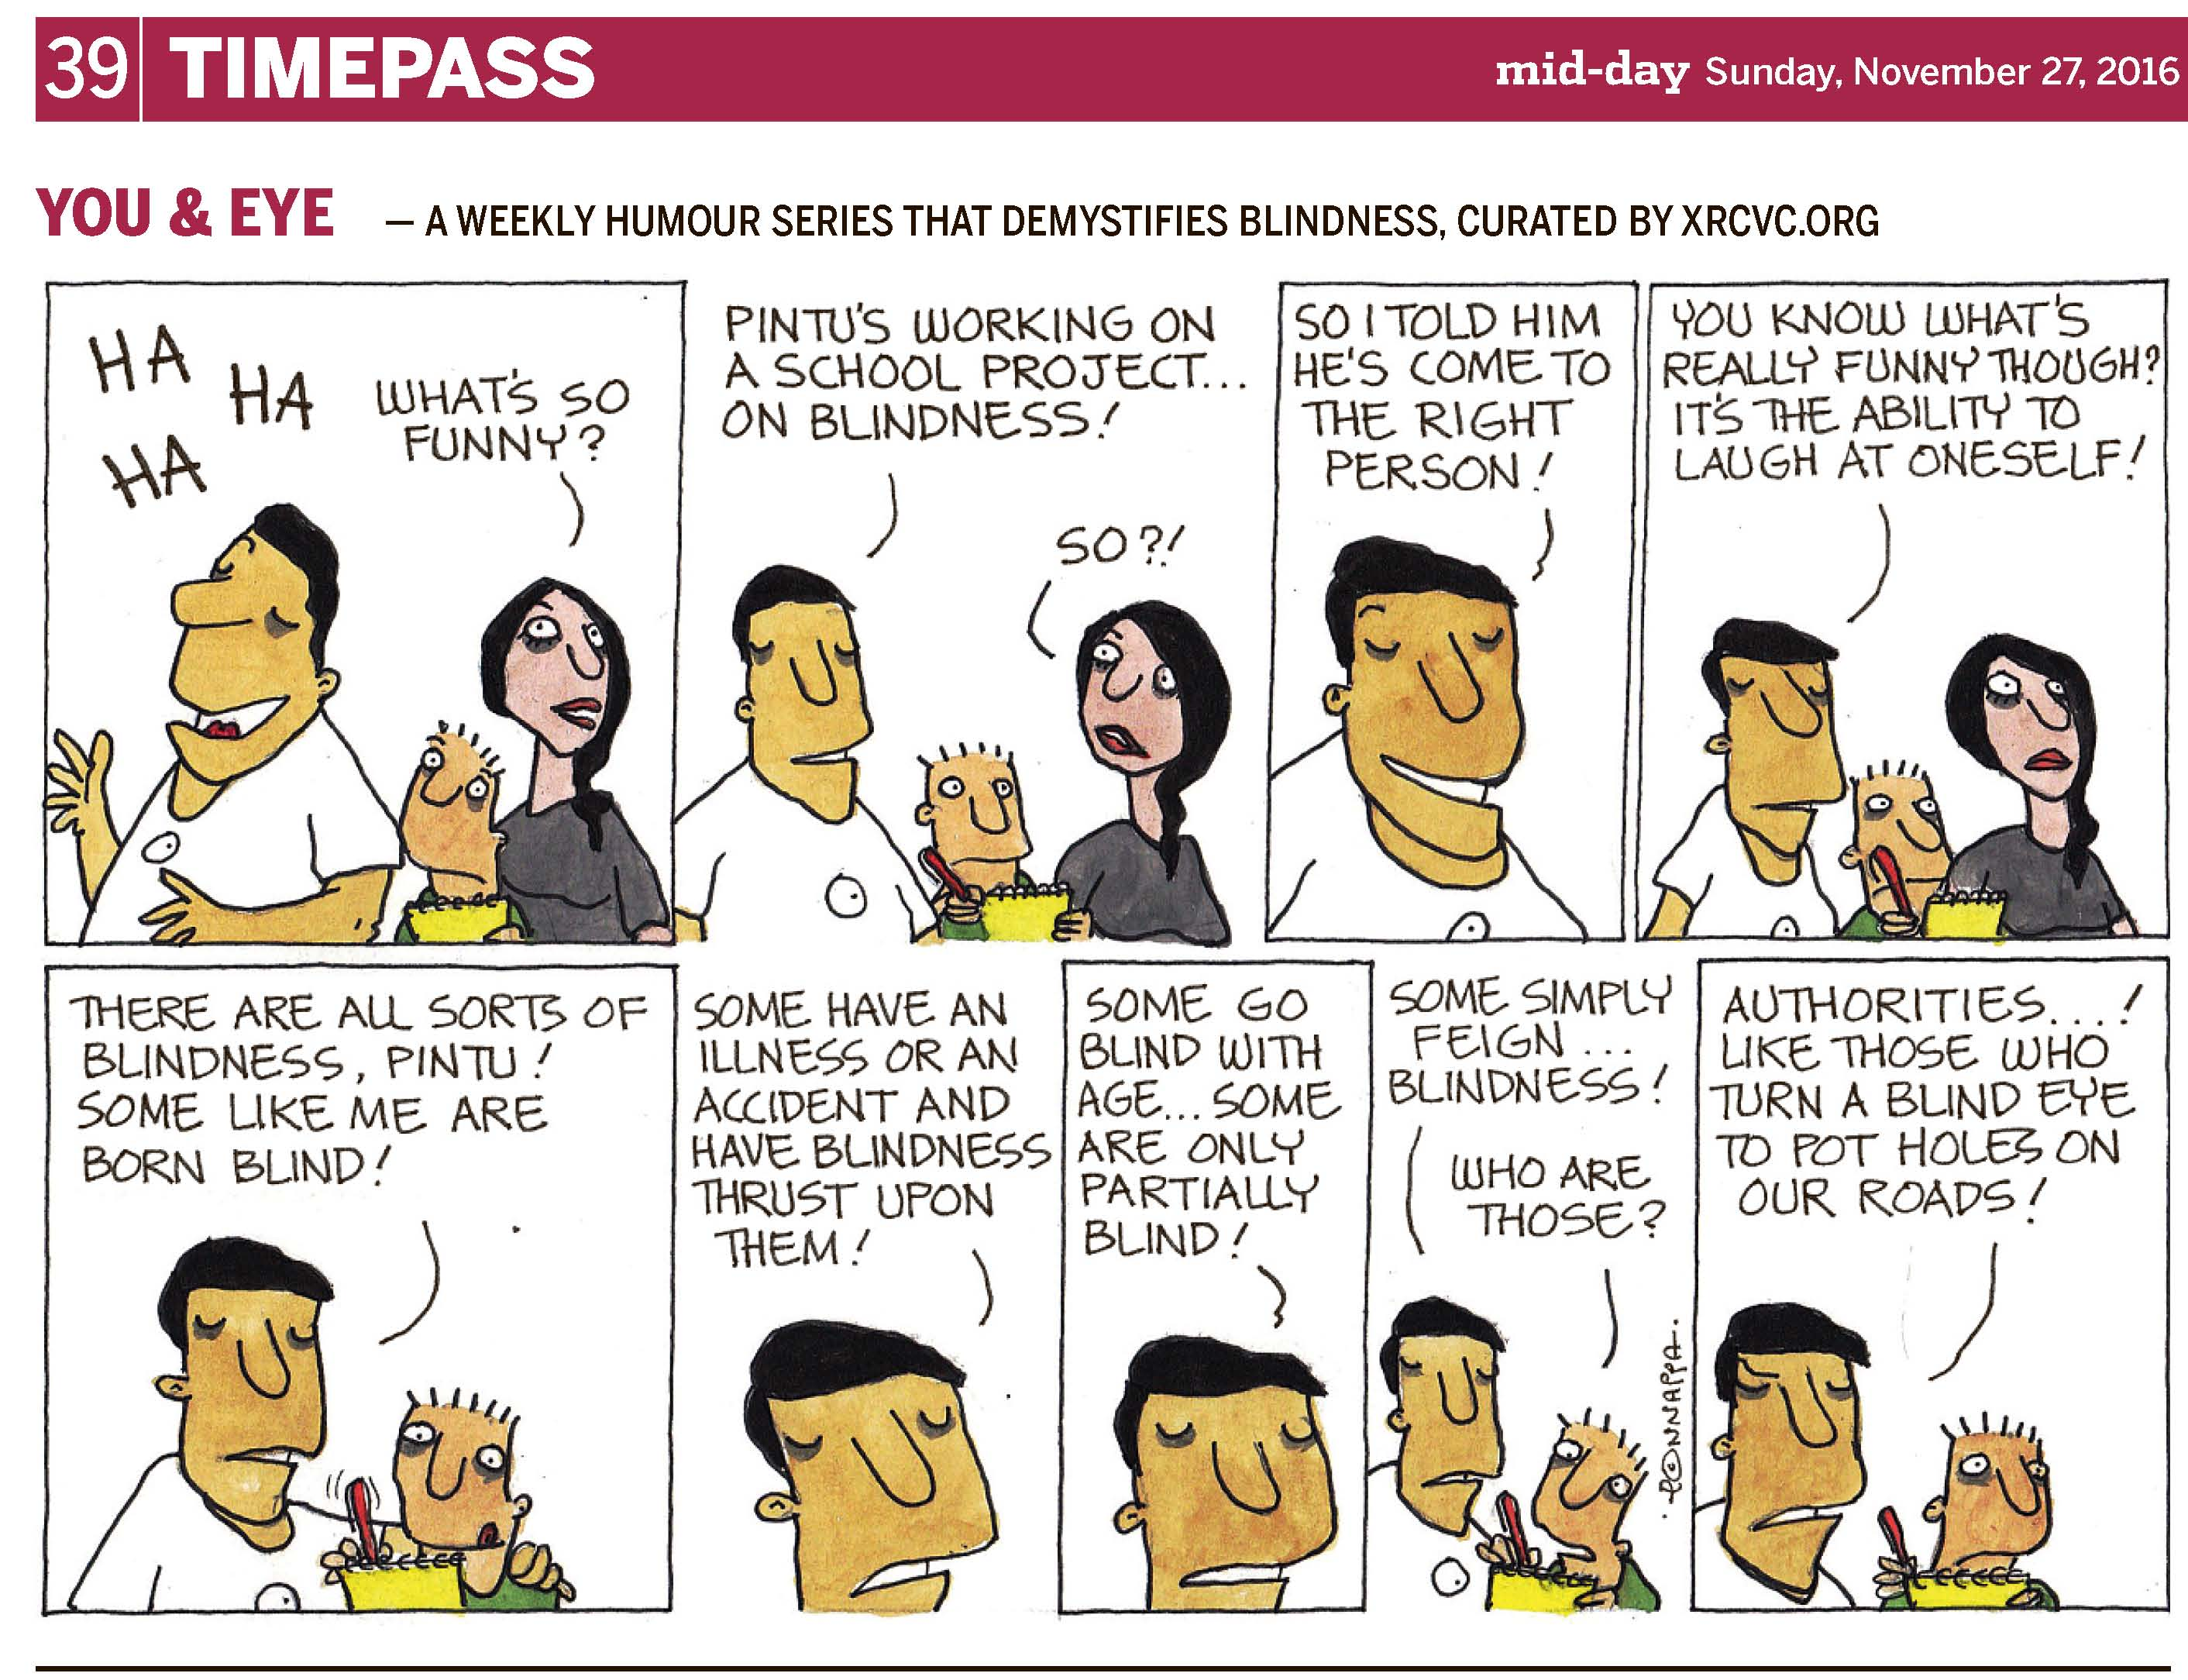 39 | TIMEPASS YOU & EYE – A WEEKLY HUMOUR SERIES THAT DEMYSTIFIES BLINDNESS, CURATED BY XRCVC.ORG Image description: A cartoon strip with 9 frames Frame 1: (BG standing and laughing, while his nephew, Pintu, and his friend, Tippy, stand behind him. Pintu is holding a yellow notepad at the level of his chest.) BG: Ha Ha Ha Tippy: What's so funny? Frame 2: (BG looks towards Pintu and Tippy. Pintu is holding a red pencil with the notepad in front of his chest.) BG: Pintu's working on a school project… on blindness! Tippy: So?! Frame 3: